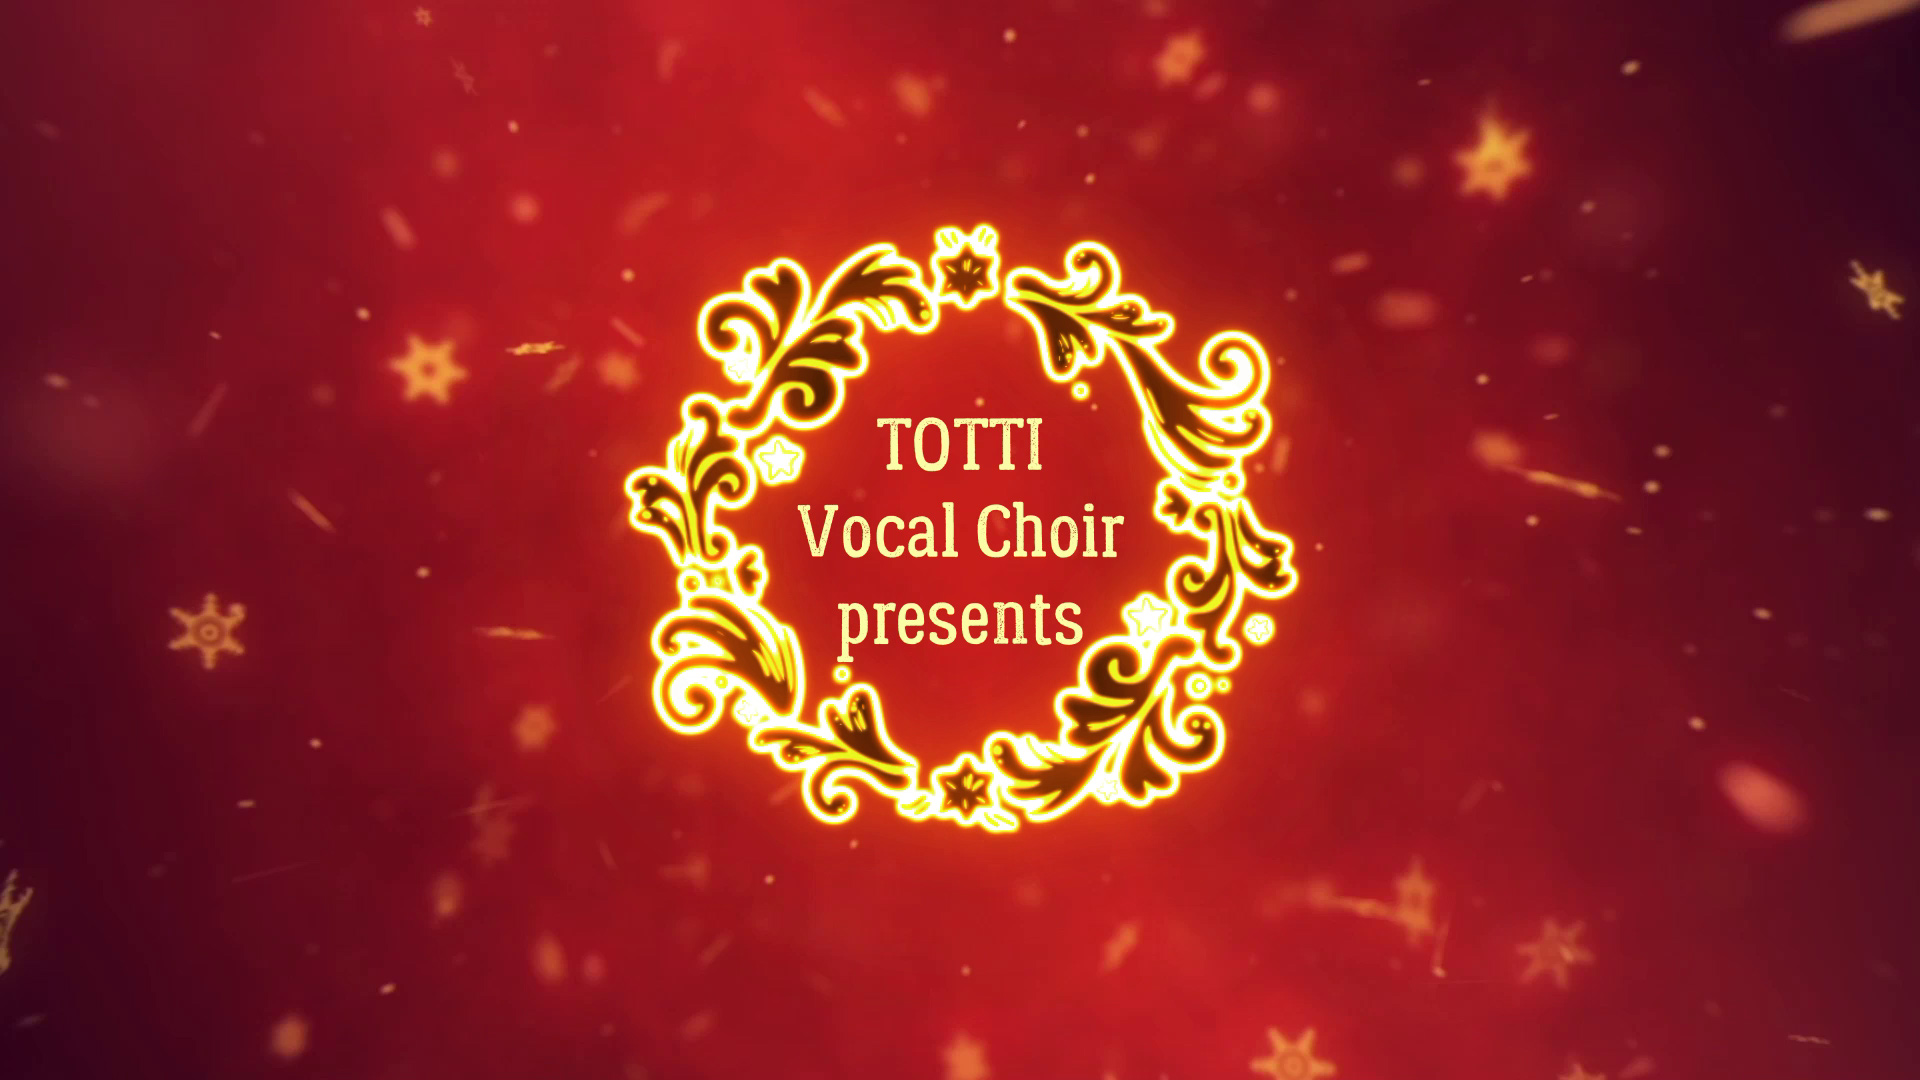 Joy To_The_World_Totti_Vocal_Choir_01